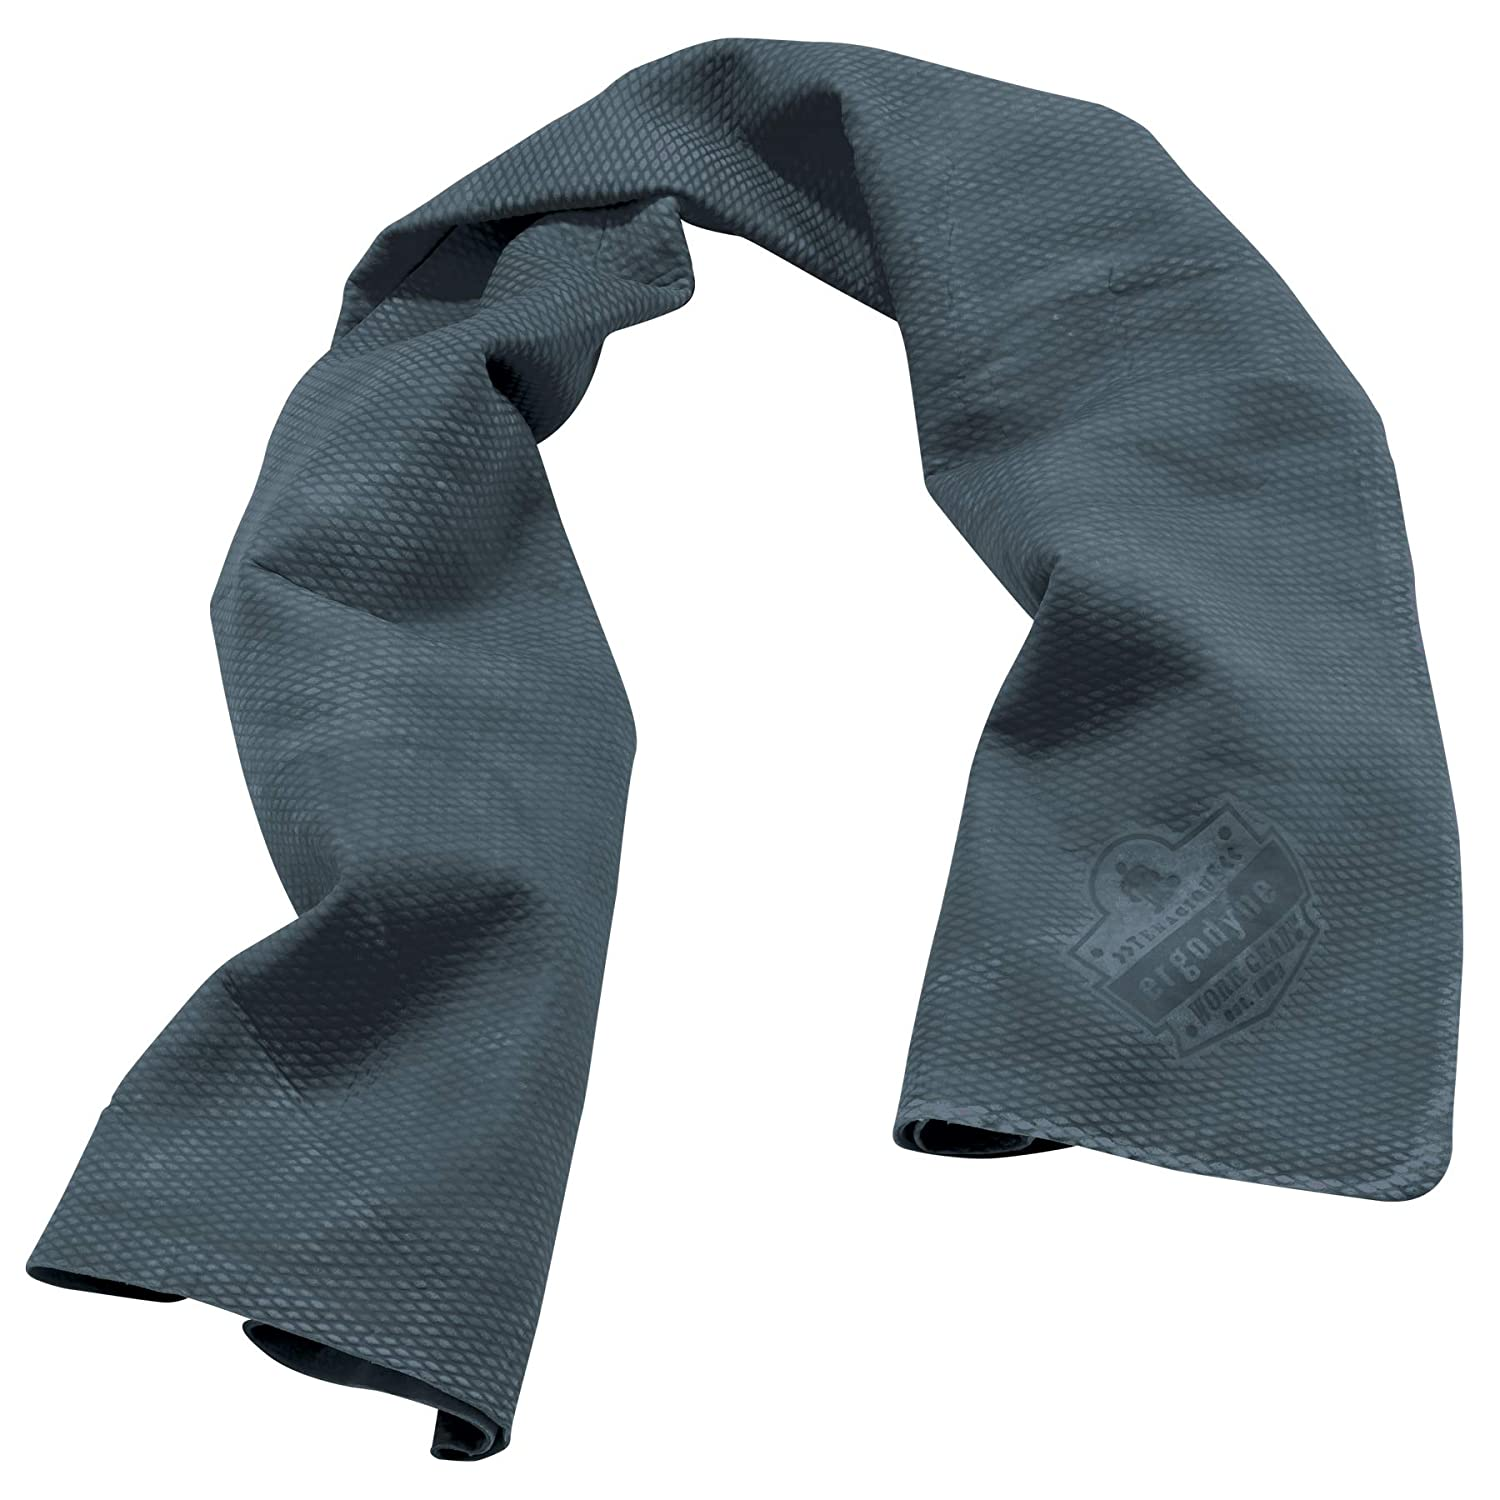 Ergodyne Chill-Its 6602 Evaporative Cooling Towel, Gray